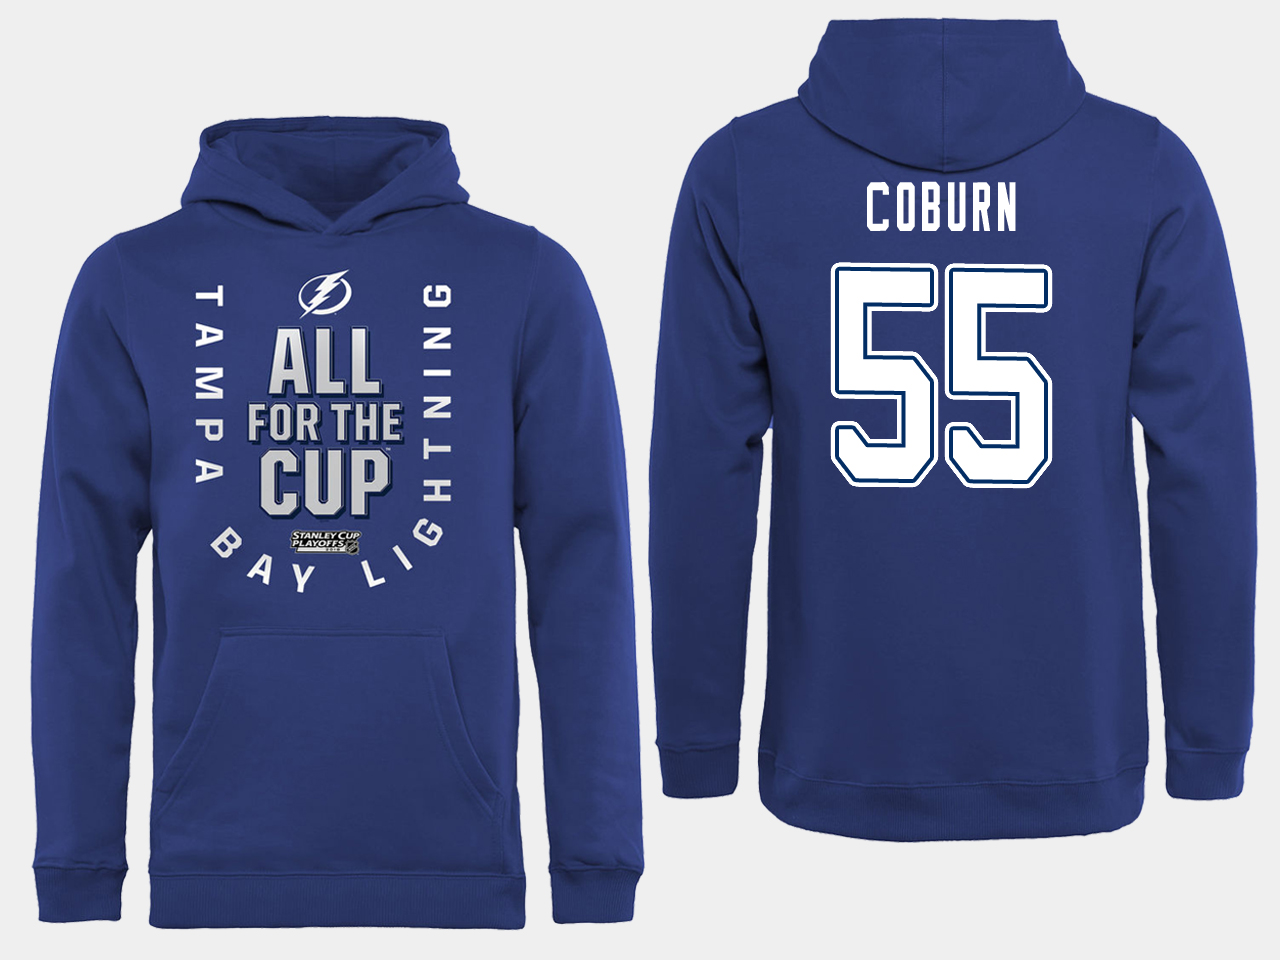 NHL Men adidas Tampa Bay Lightning 55 Coburn blue All for the Cup Hoodie